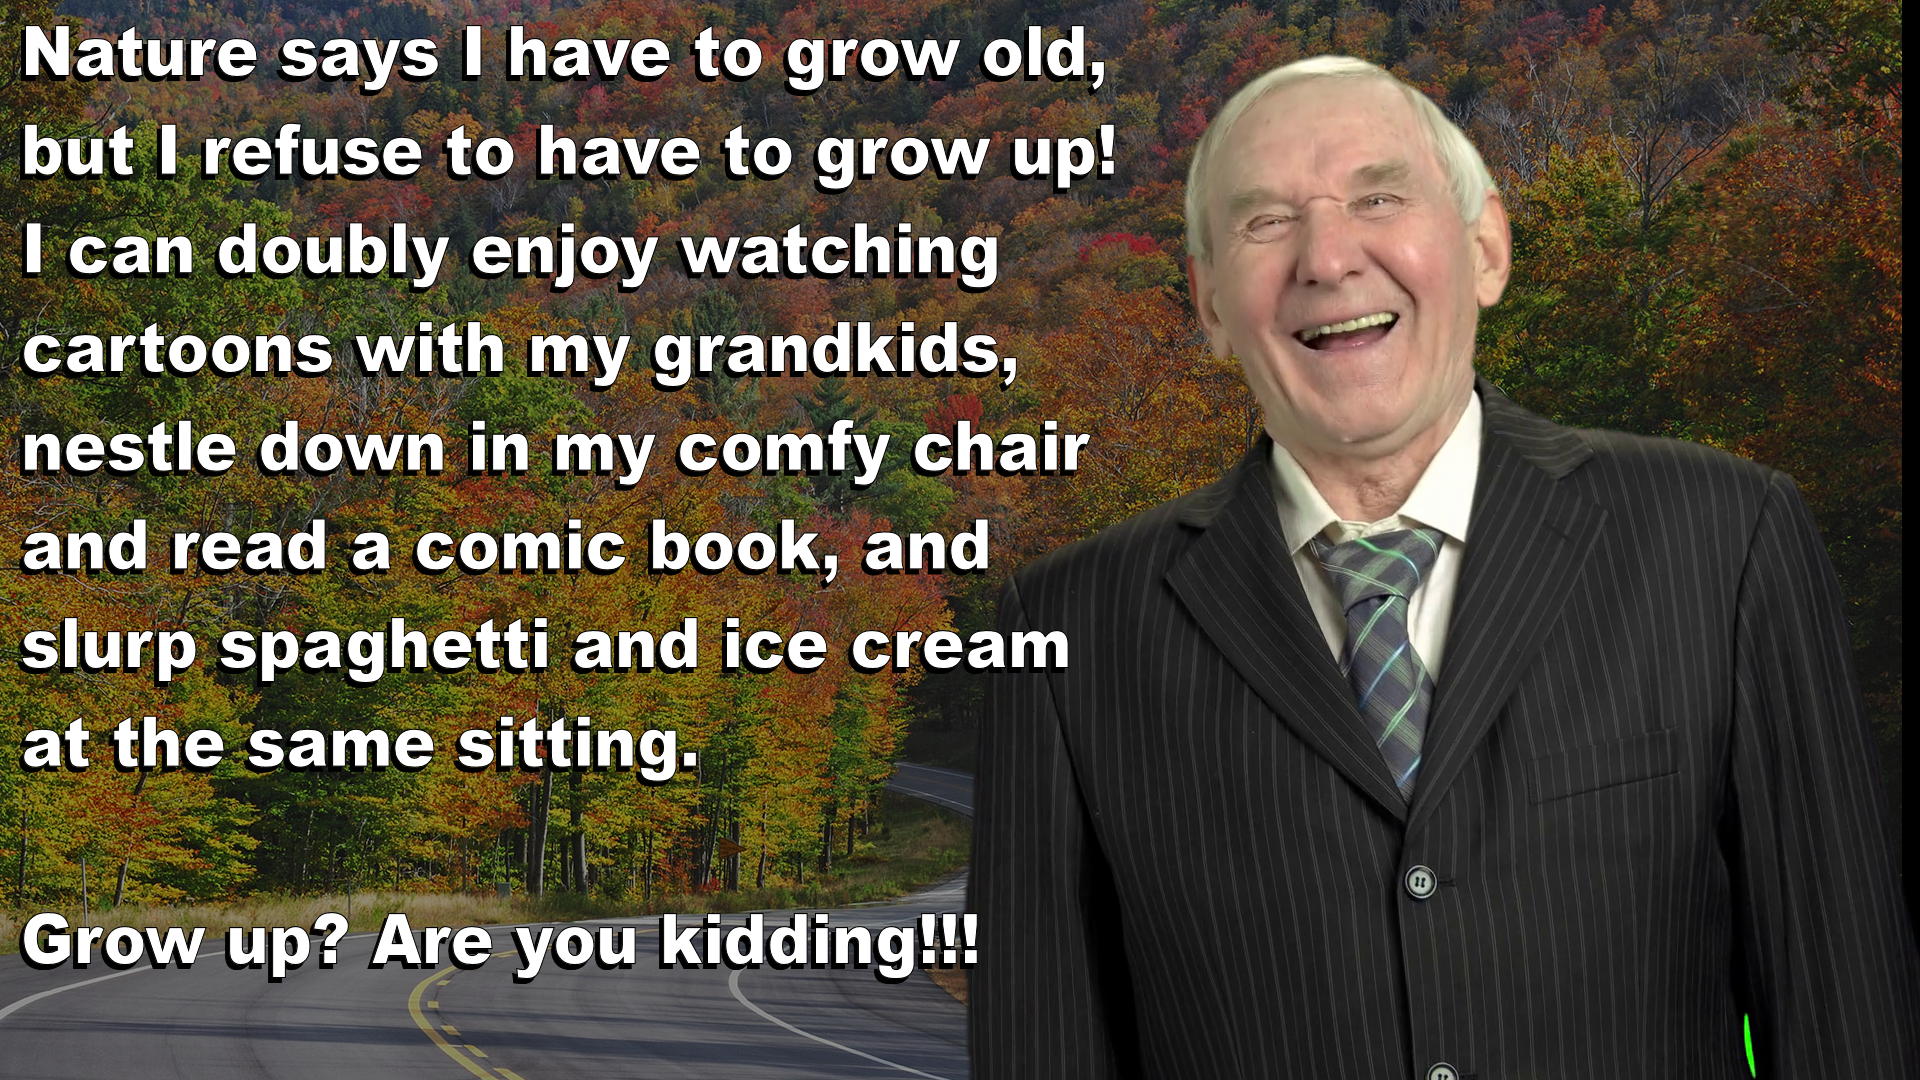 [Image]Growing old is mandatory: Growing up is optional